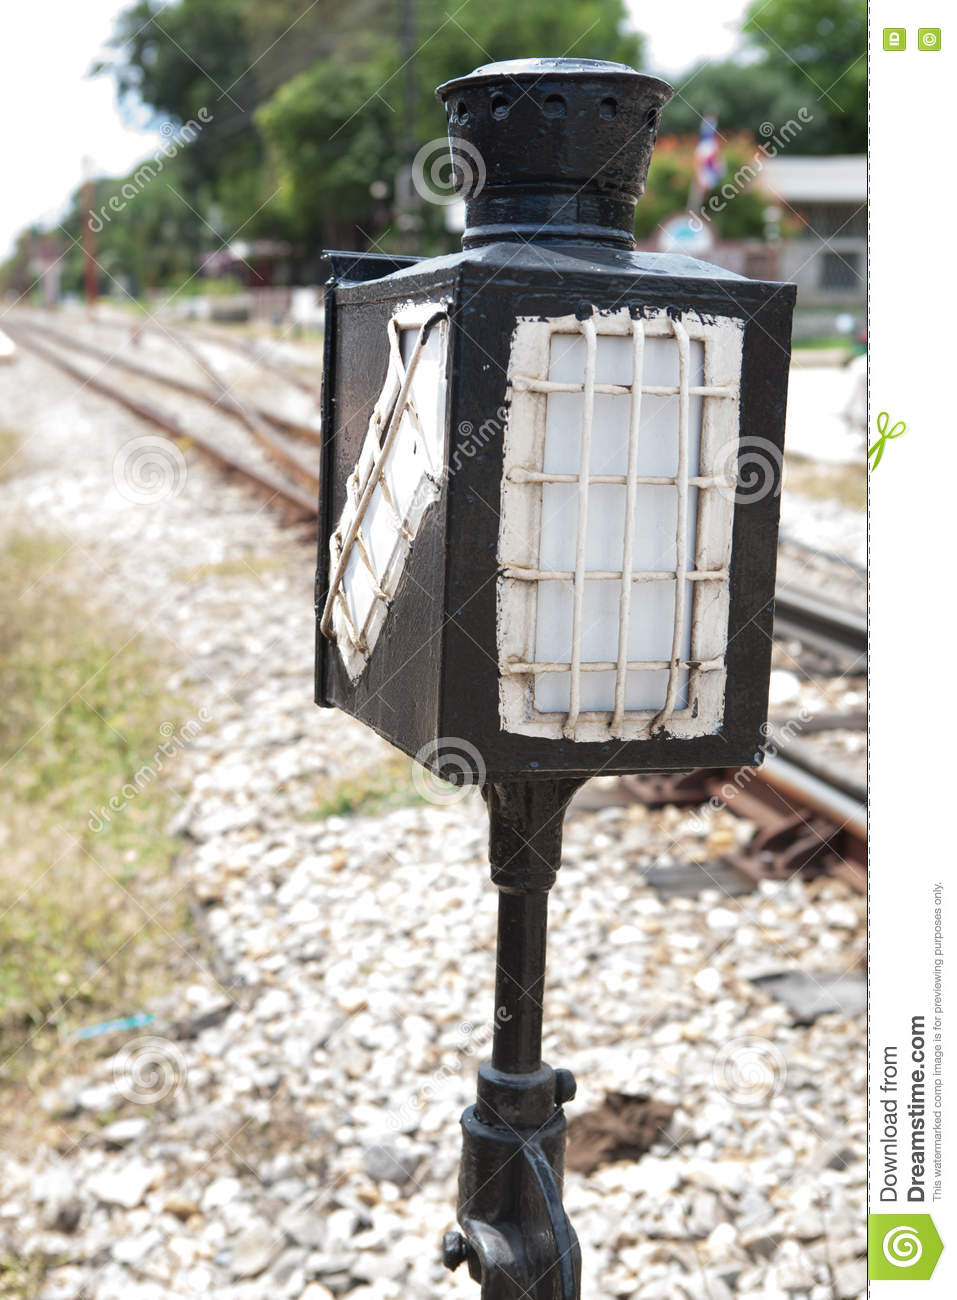 Old Lamp Pole In Railway Station Stock Photo - Image of railroad